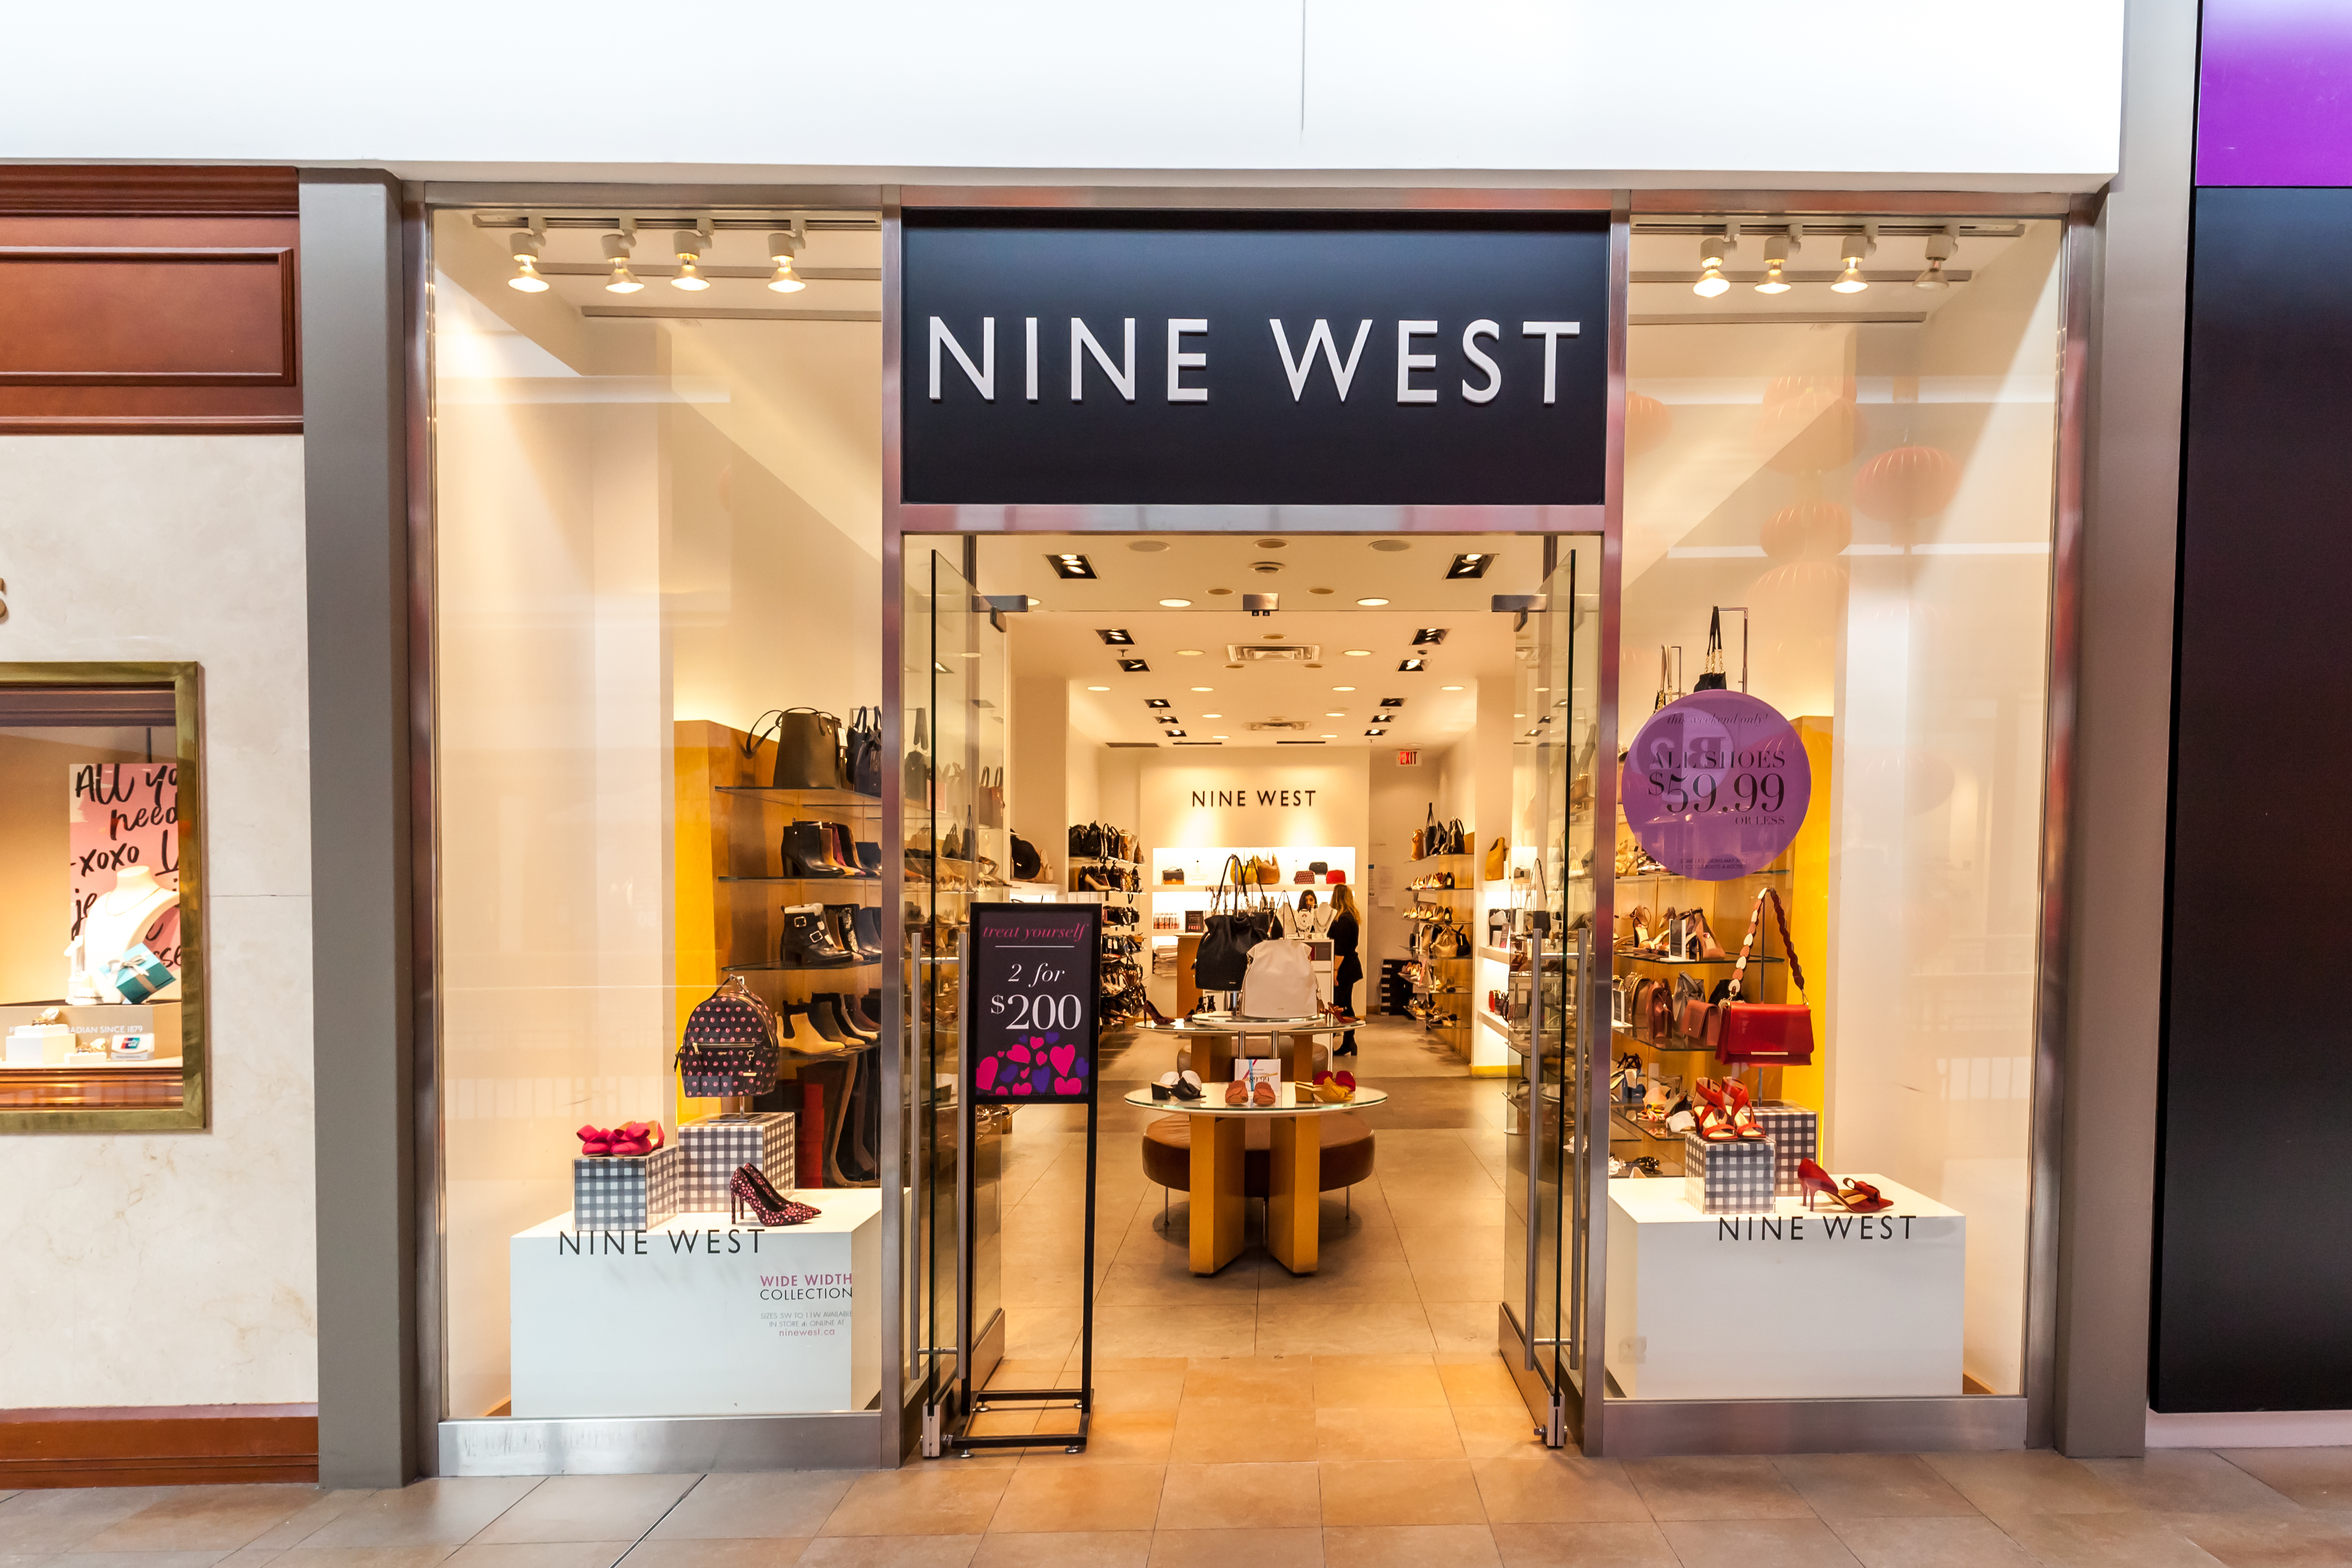 NINE WEST: The latest selection of women's shoes, dress shoes, sandals, career shoes, casual shoes, boots and more.